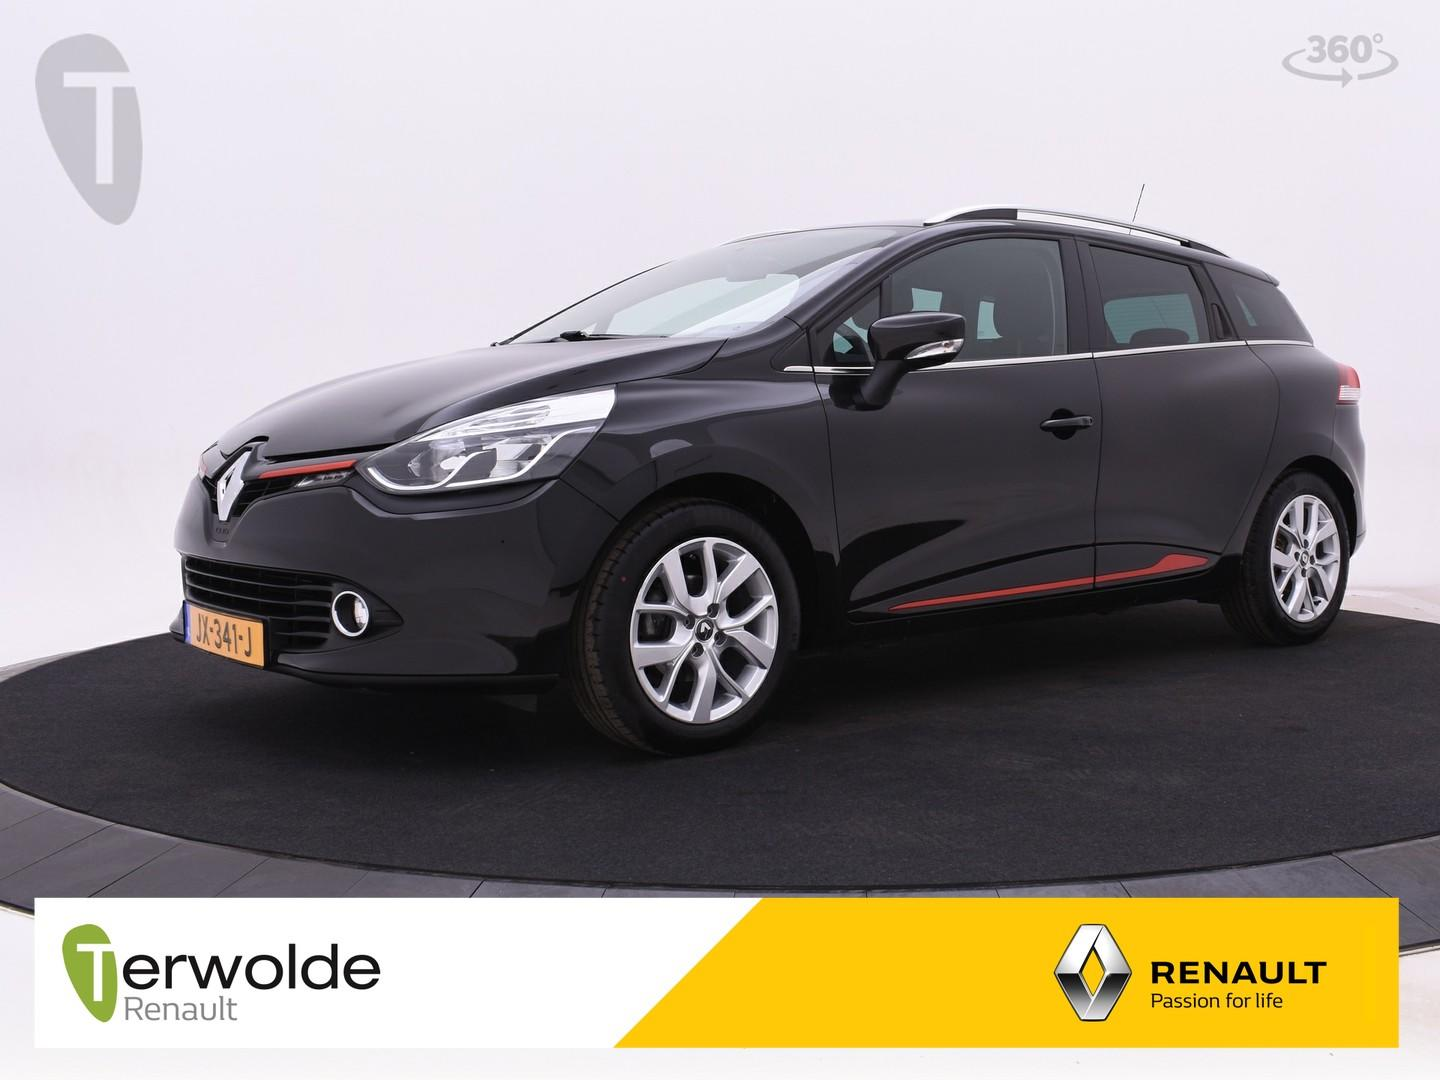 Renault Clio Estate 90pk tce night&day airco i full map navigatie i cruise control * rijklaar *